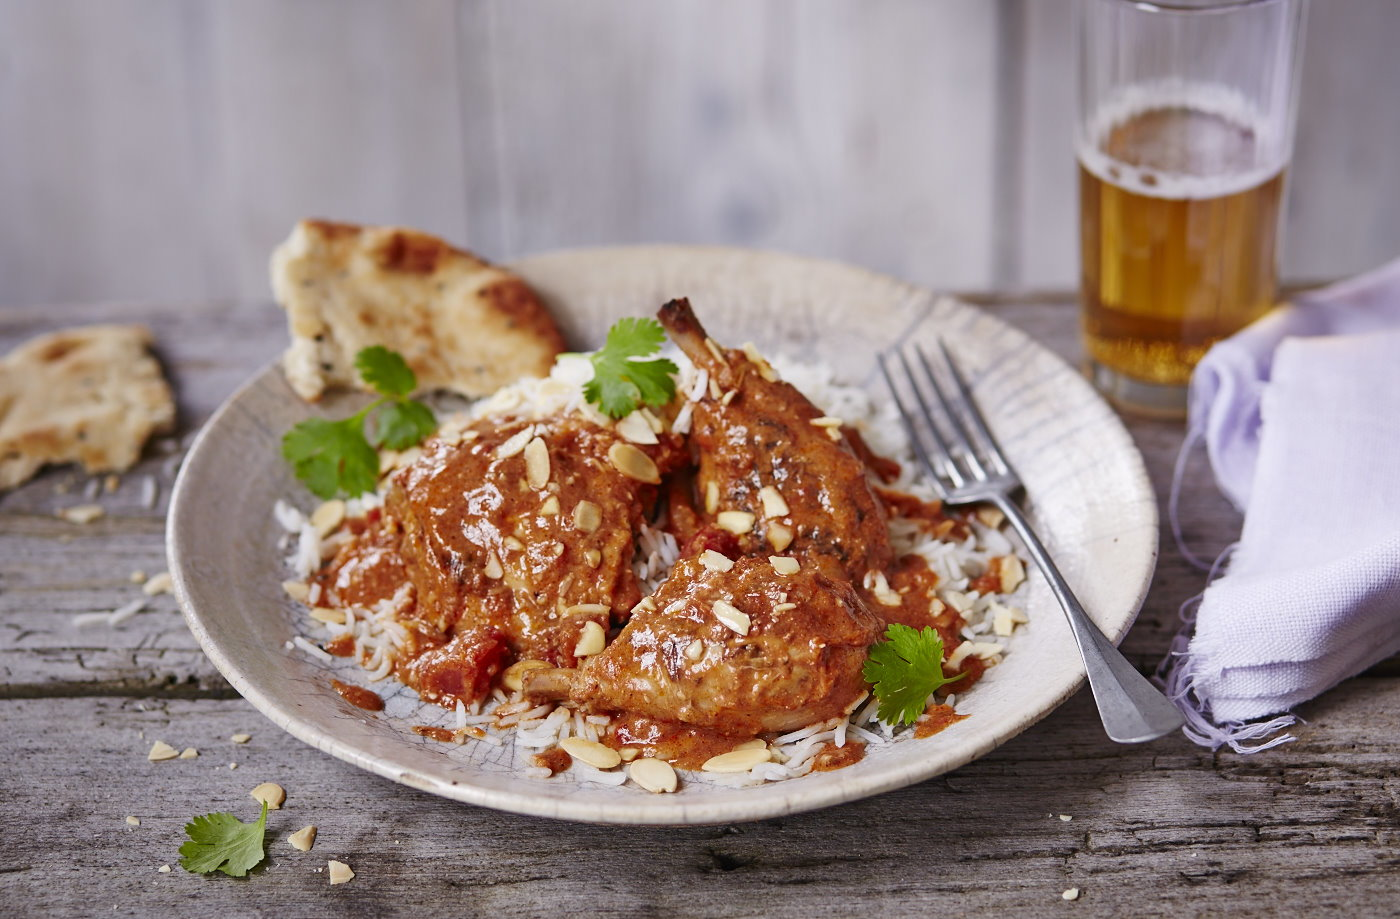 Slow-cooked chicken in tikka masala sauce recipe